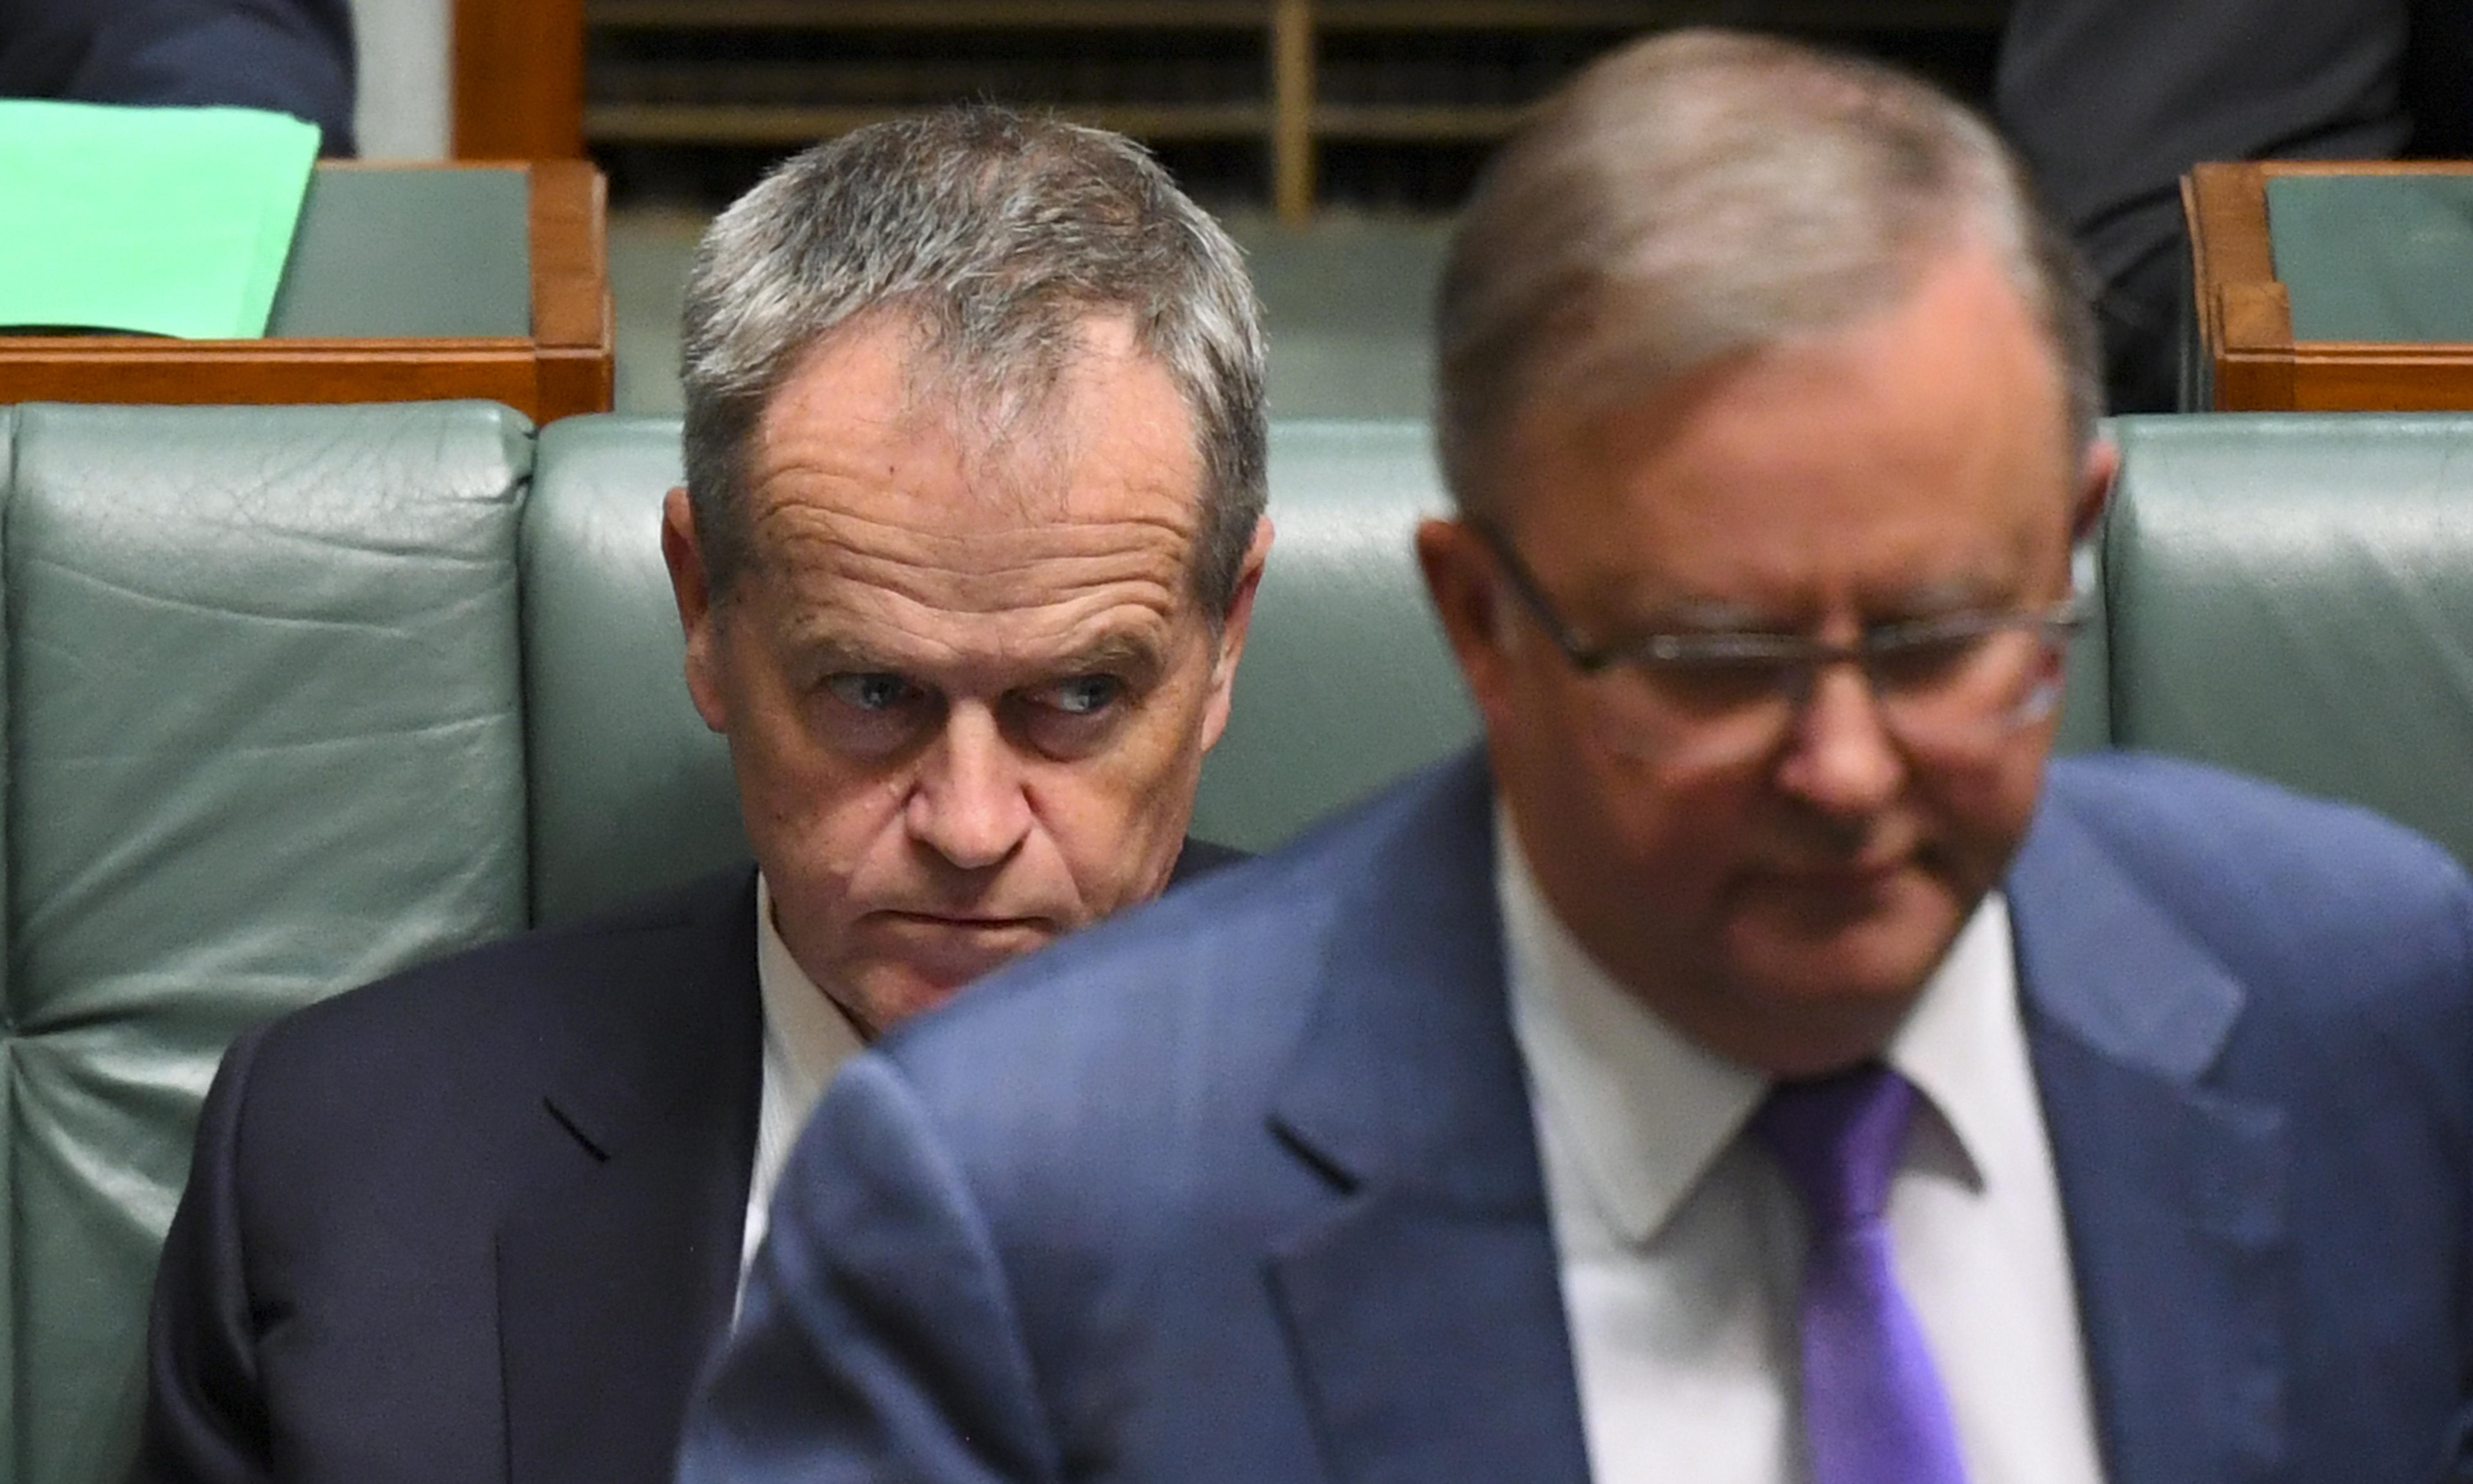 It wasn't any one thing that cost Labor the election – it was everything